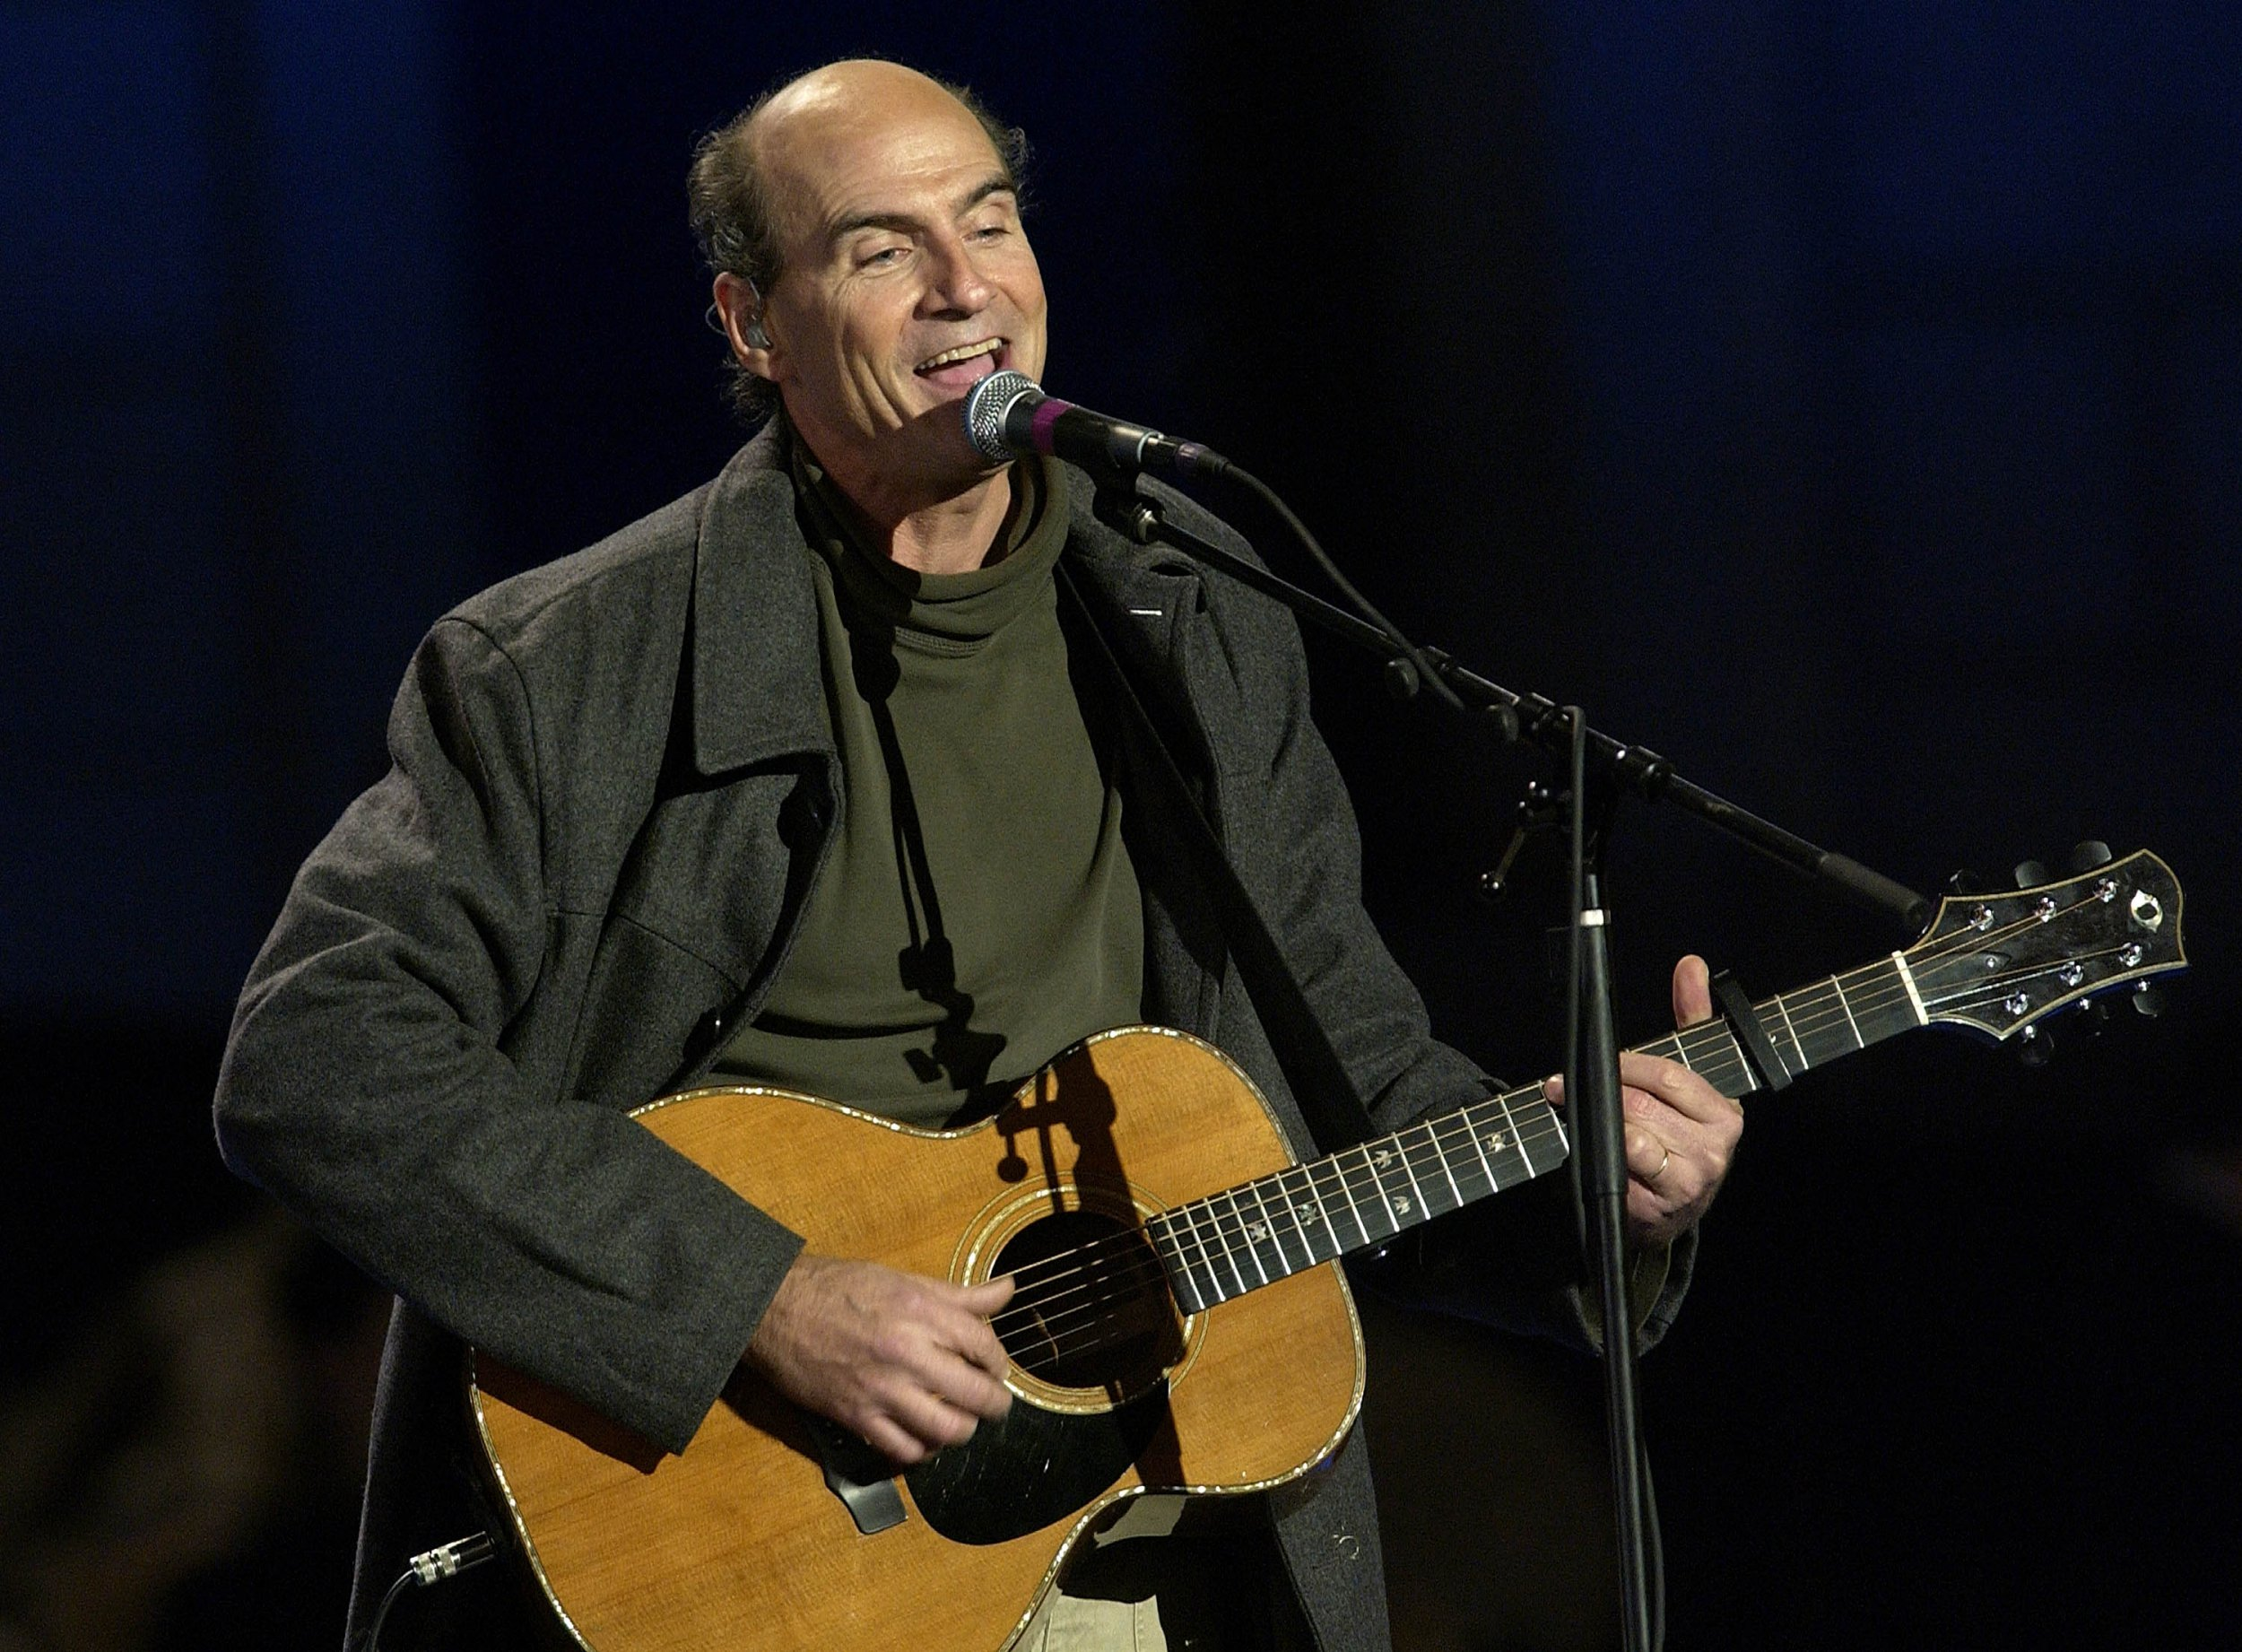 """BOSTON - NOVEMBER 02: Musician James Taylor performs during the """"Election Night 2004 With John Kerry and John Edwards"""" event November 2, 2004 in Boston. (Photo by Stephen Chernin/Getty Images)"""